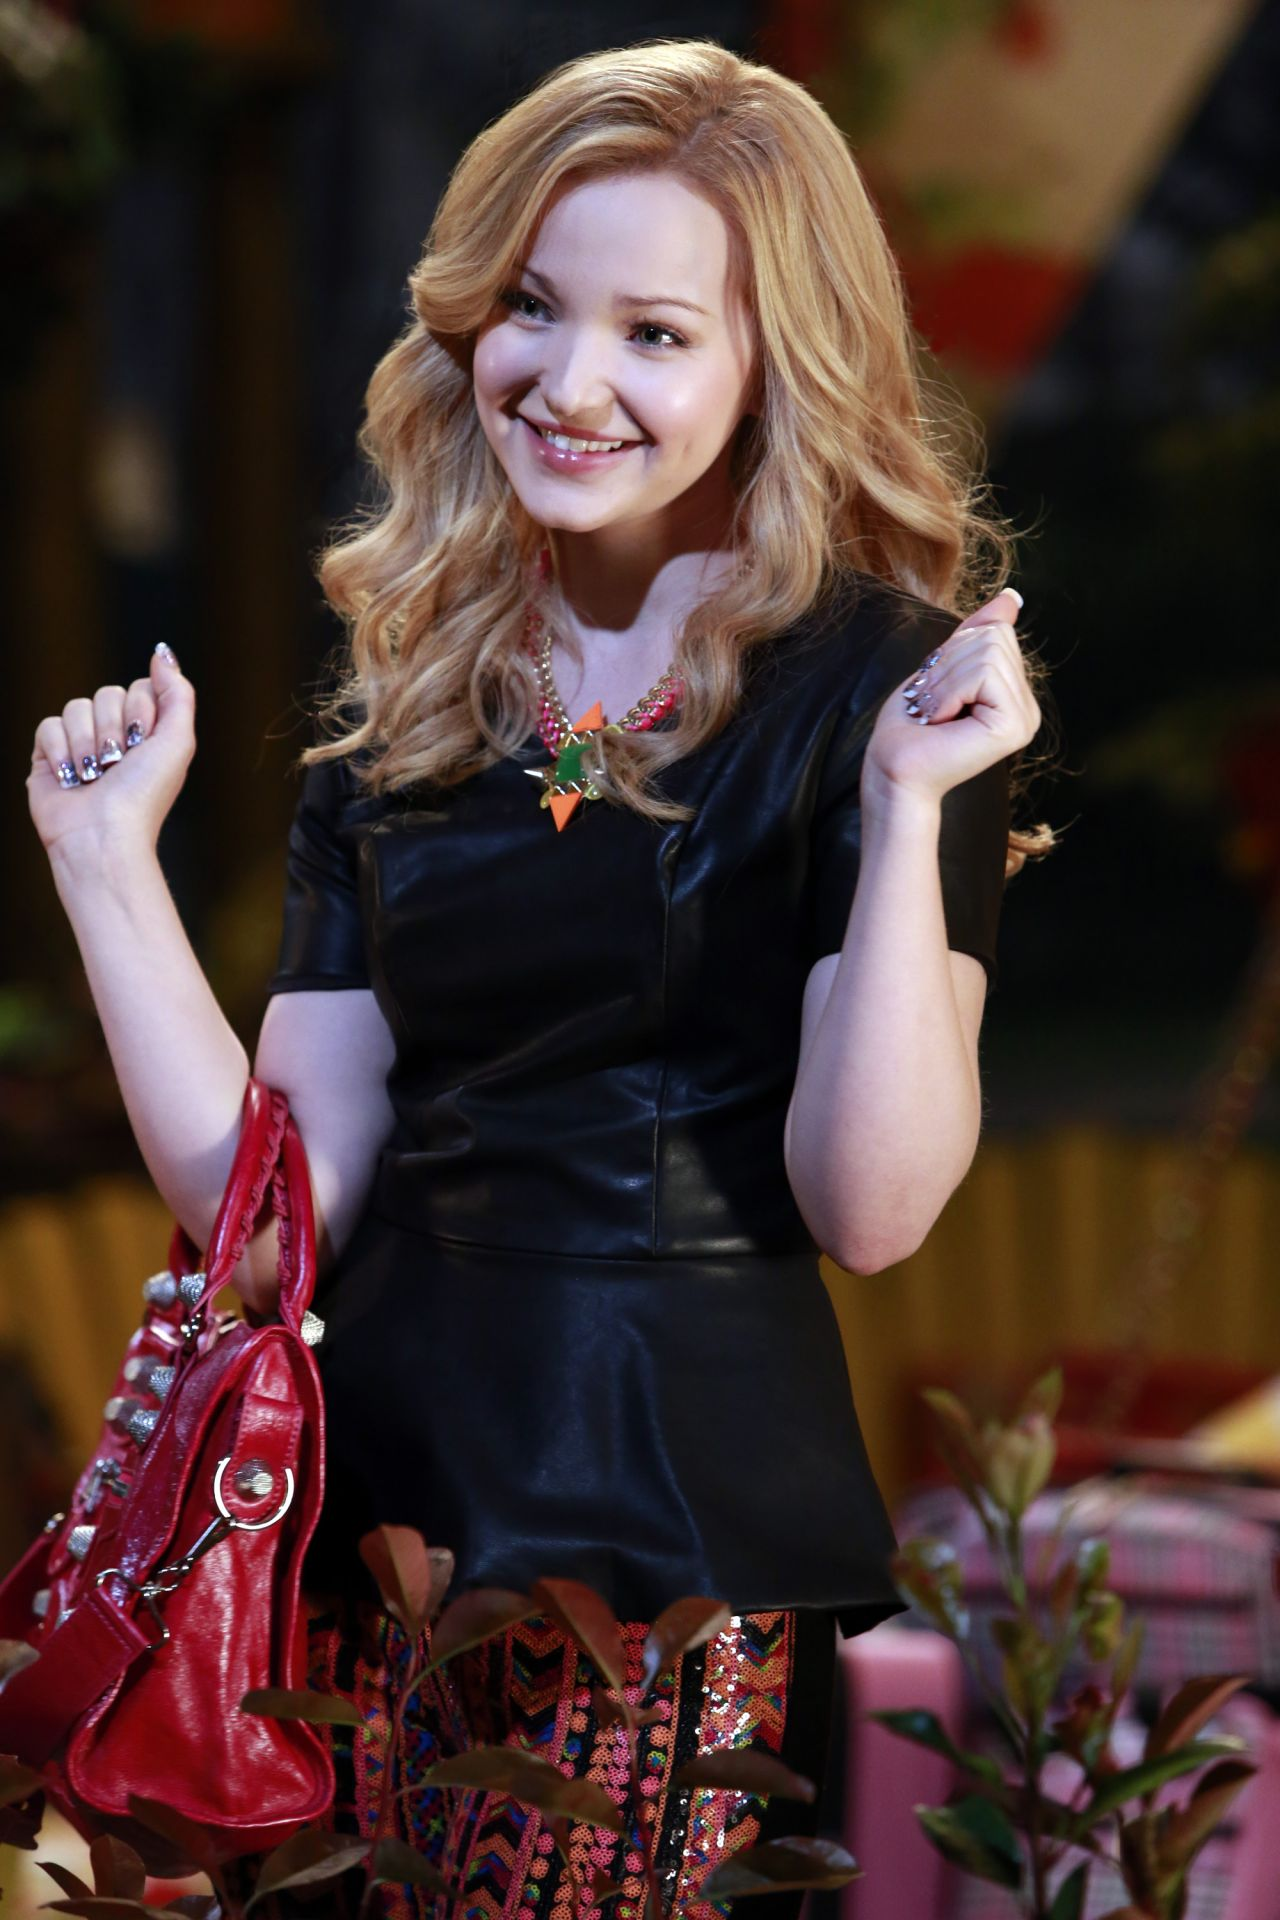 Dove Cameron - LIV AND MADDIE Promo Photoshoot 2013